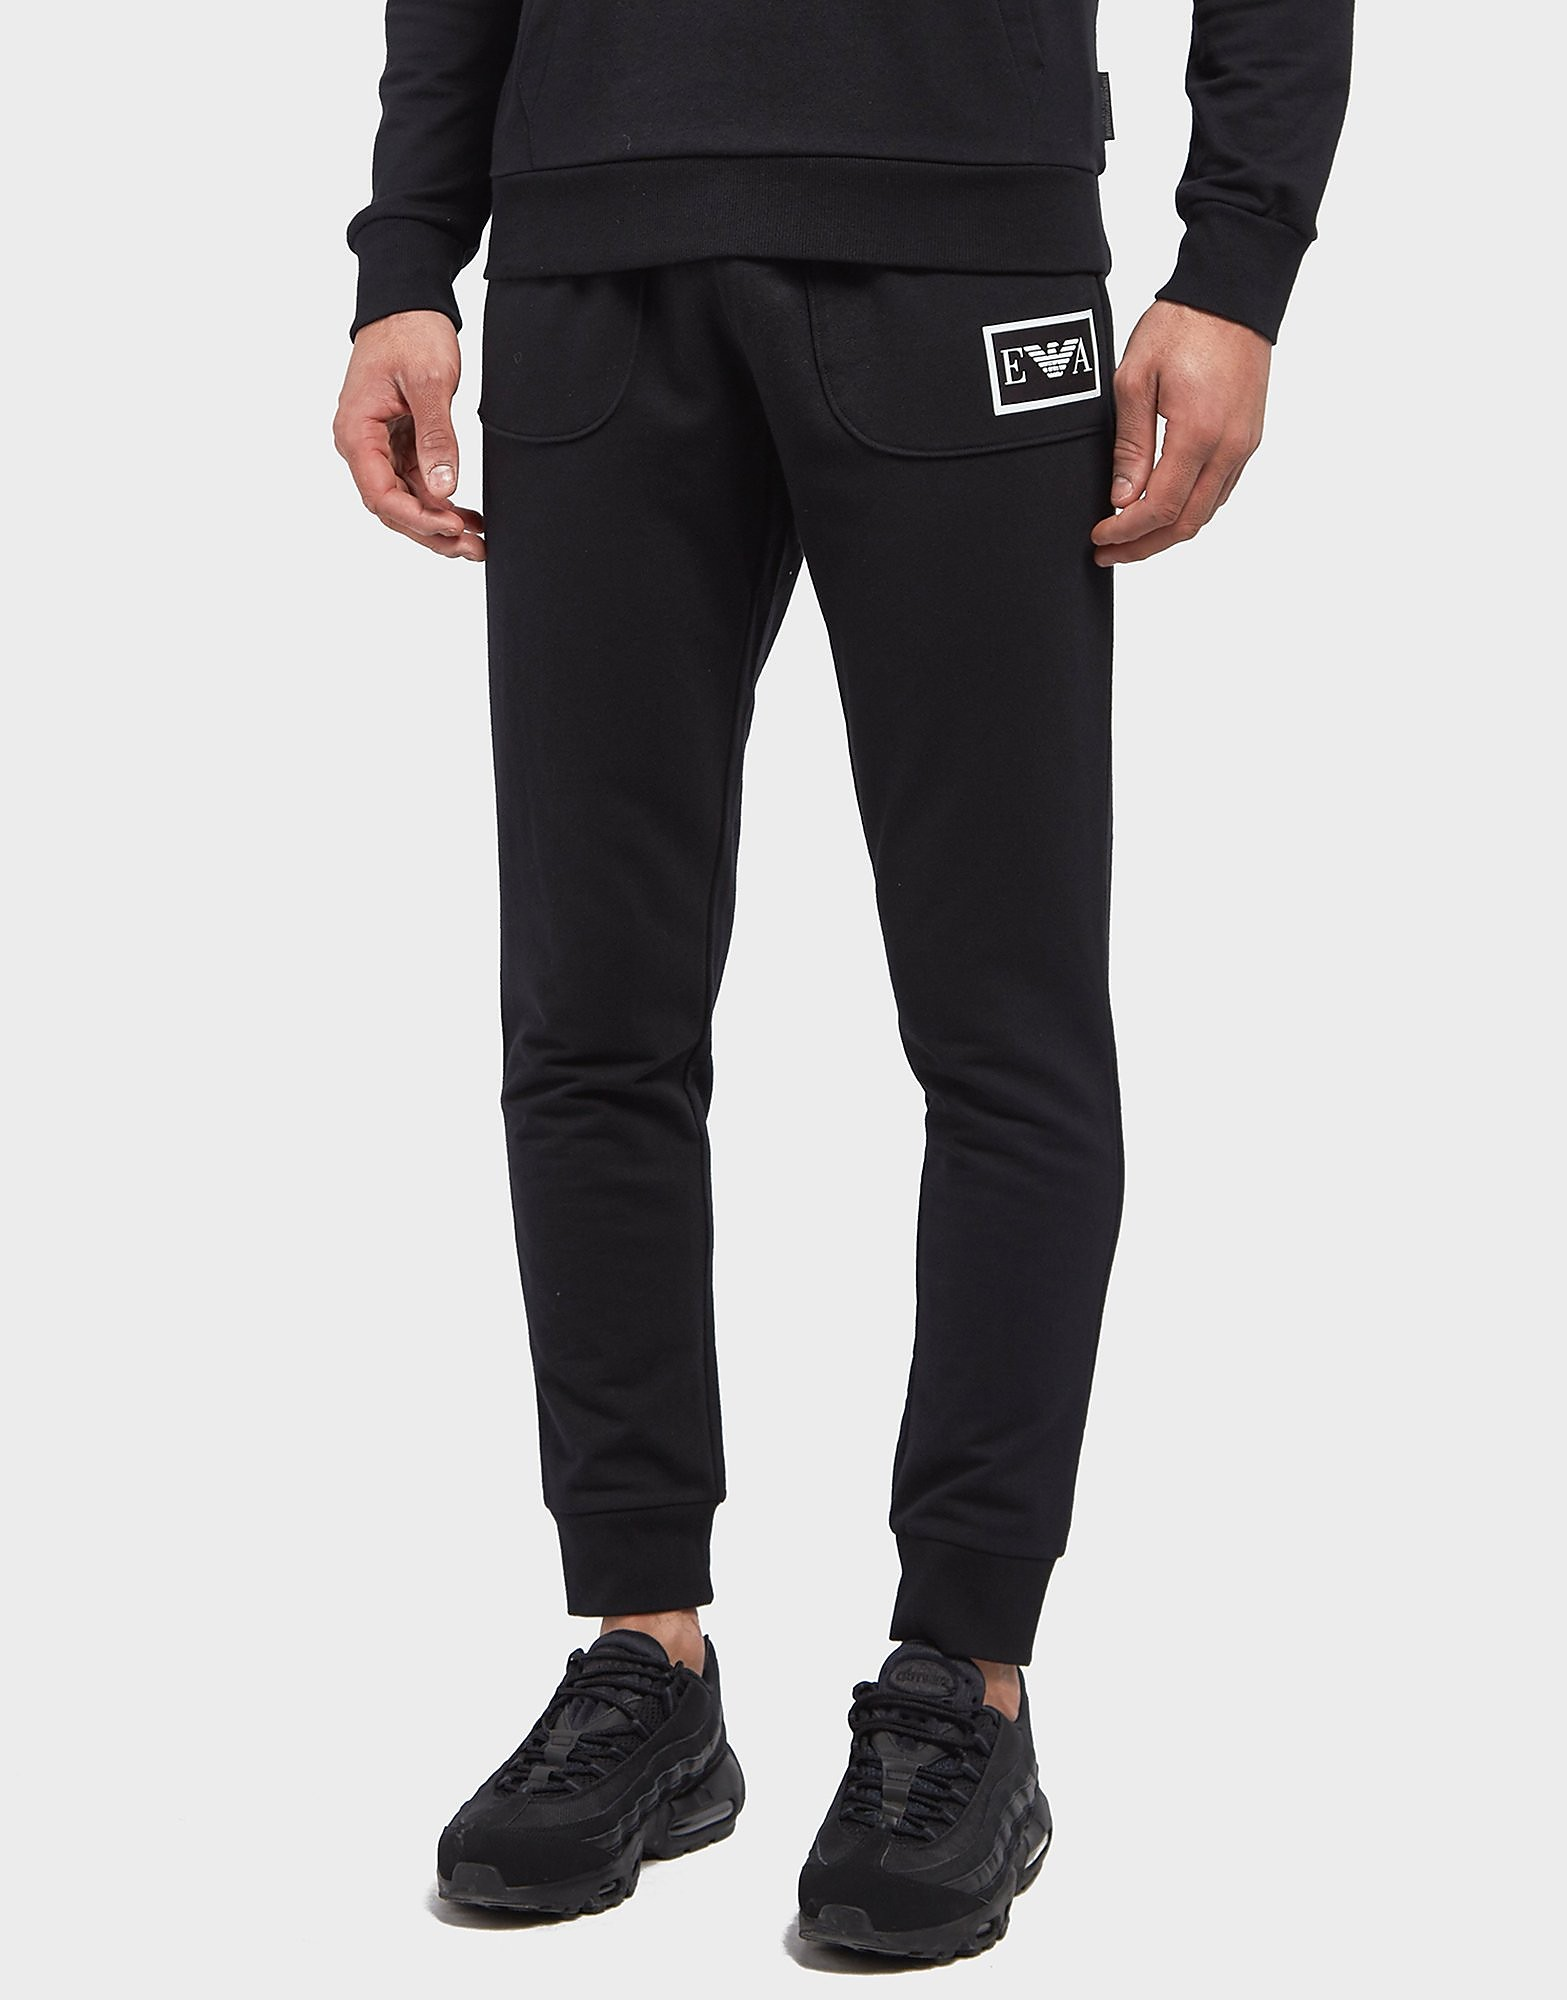 Emporio Armani Eva Cuffed Fleece Pants